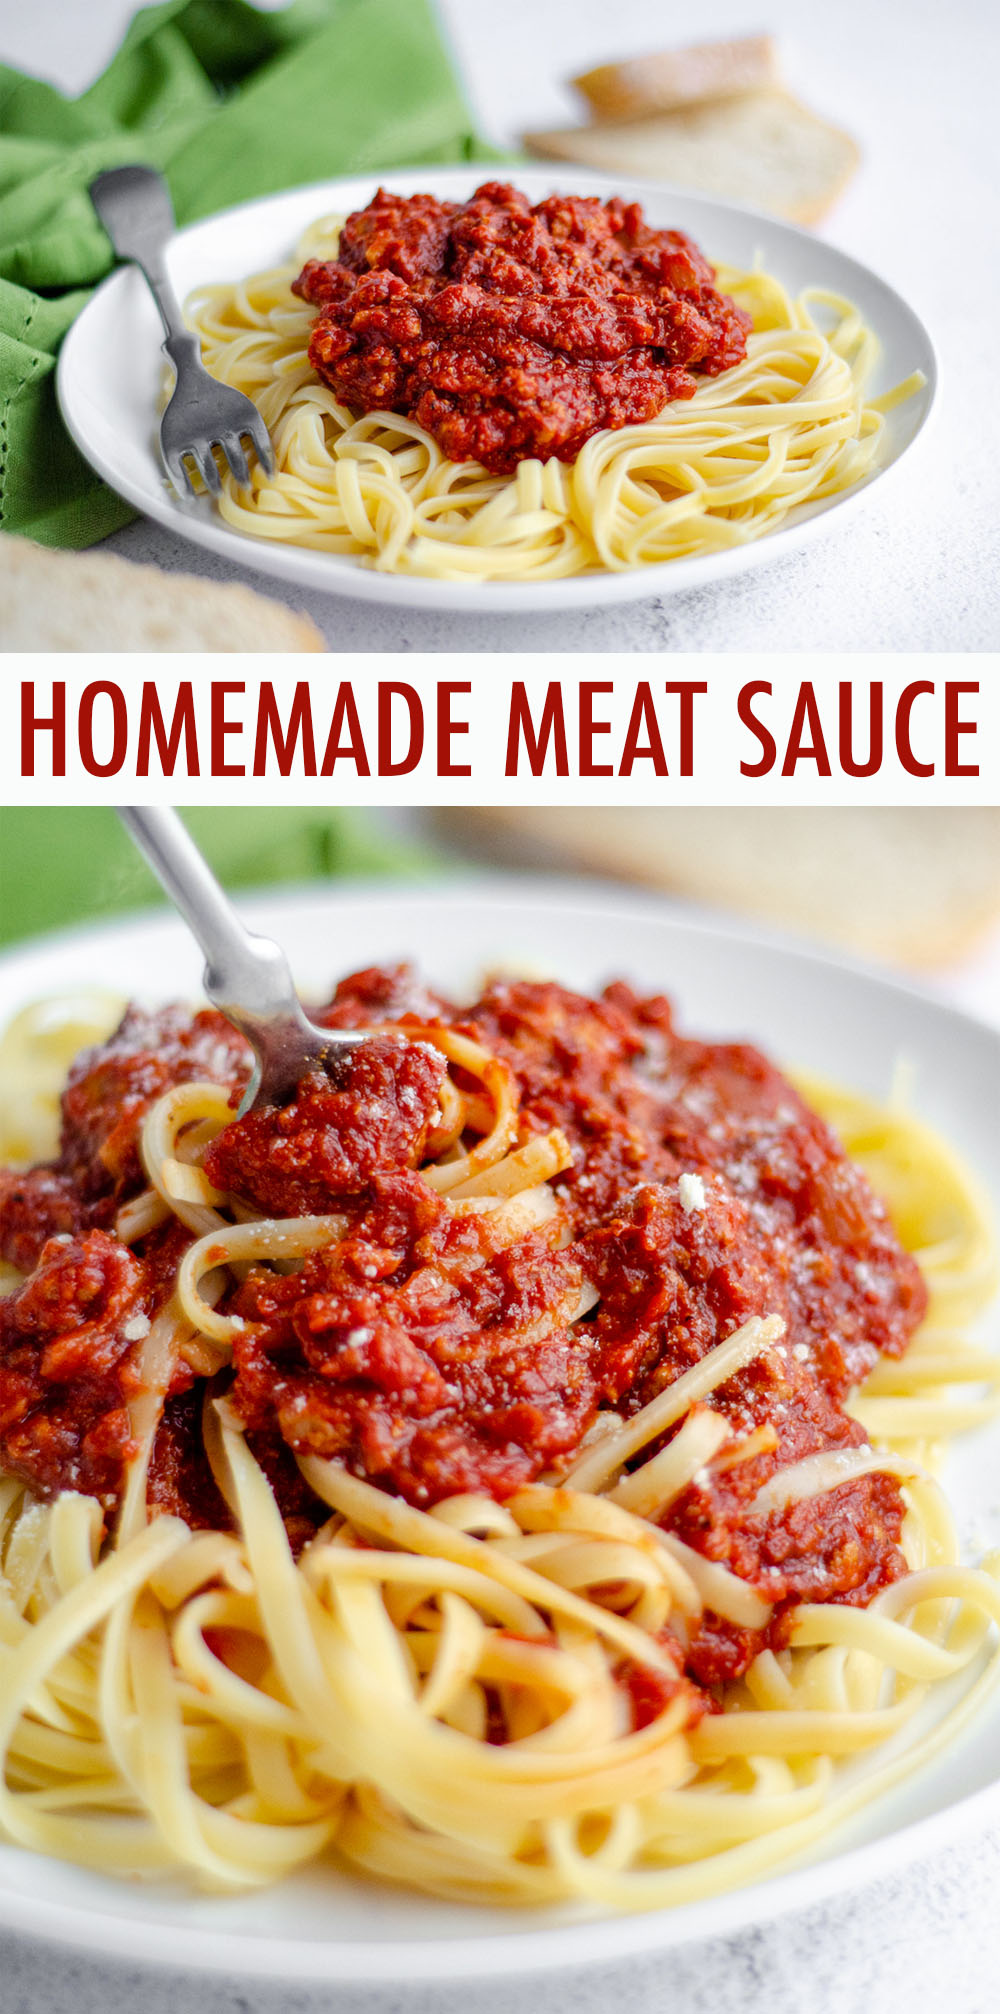 An easy homemade pasta sauce made with five simple ingredients. This recipe has been in my family forover a century and is a go-to for pasta dishes and lasagna or over vegetables or eggs.